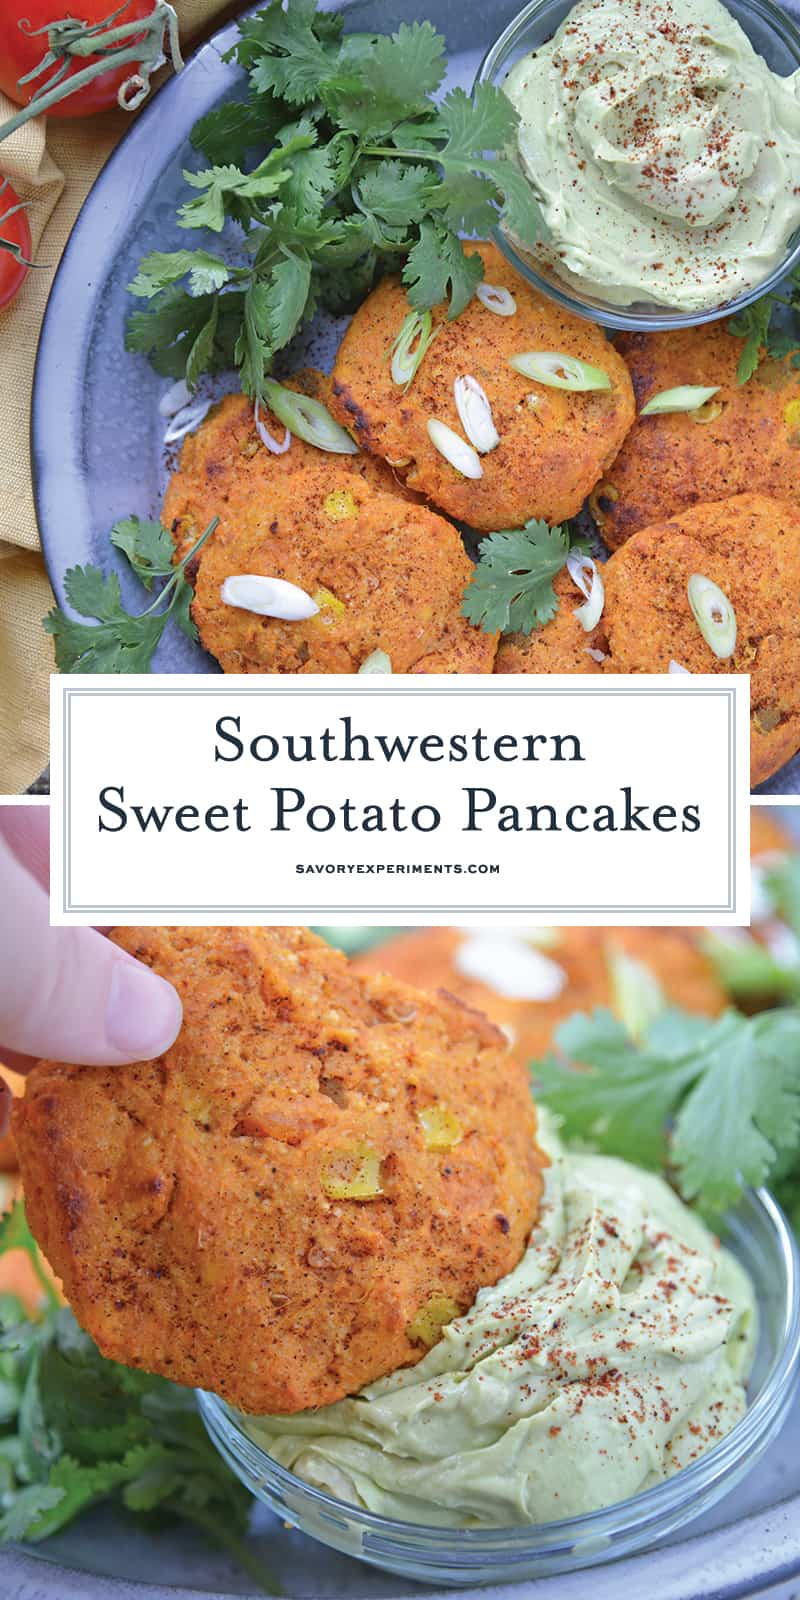 Southwestern Sweet Potato Pancakes are made with mashed sweet potatoes, green chile, corn and southwest spices making then sweet and smoky. Served with a cool, avocado dipping sauce.#potatopancakes #sweetpotatorecipe www.savoryexperiments.com